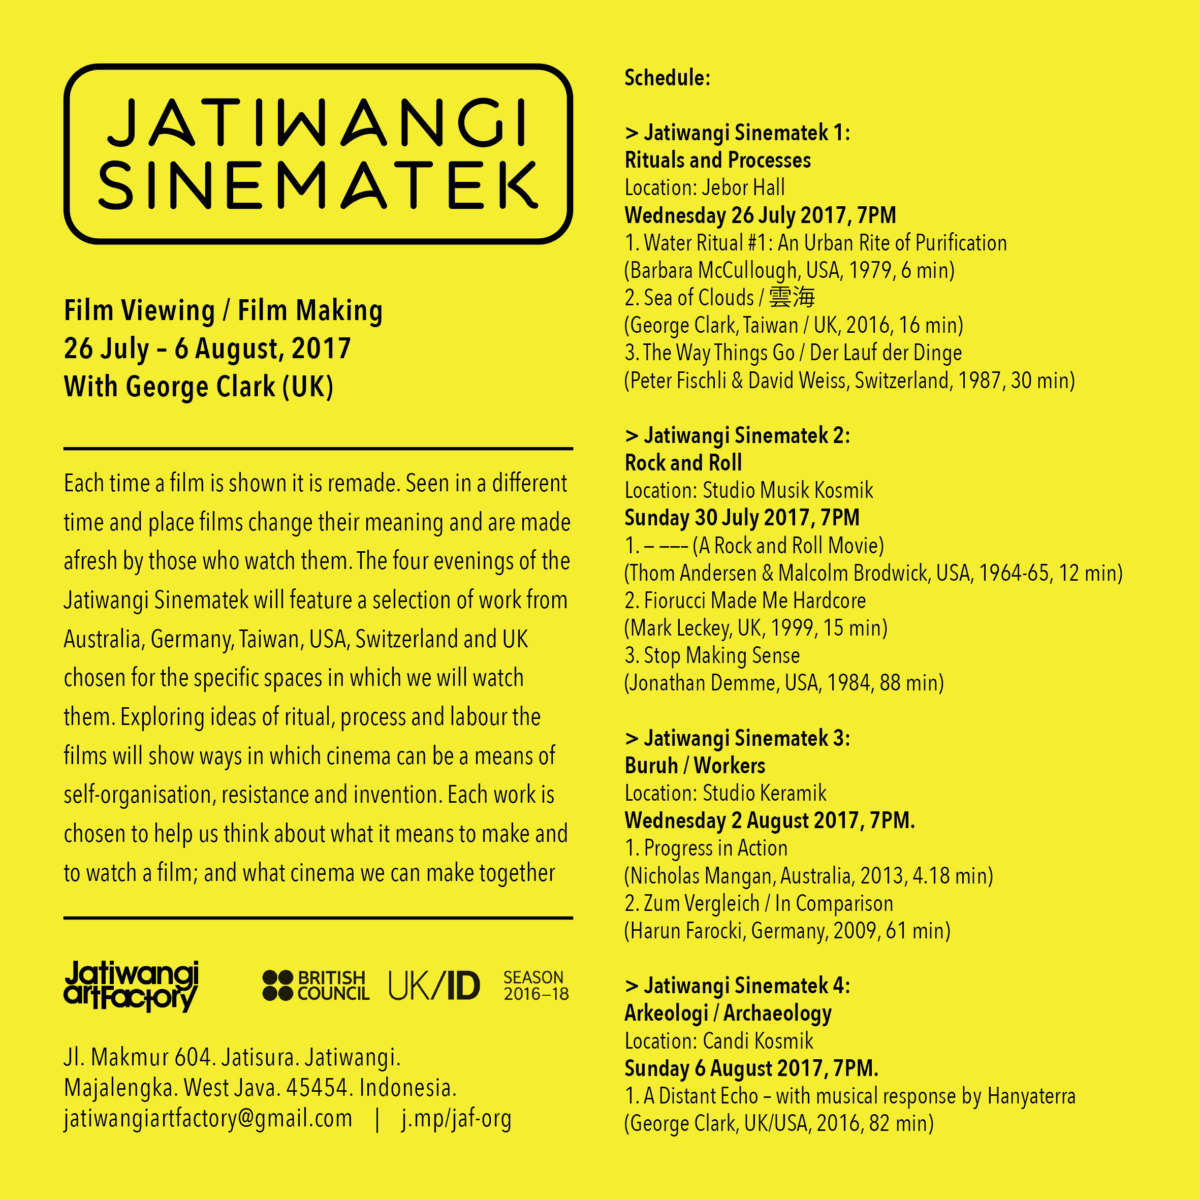 Jatiwangi Sinematek, 26 July – 6 August 2017